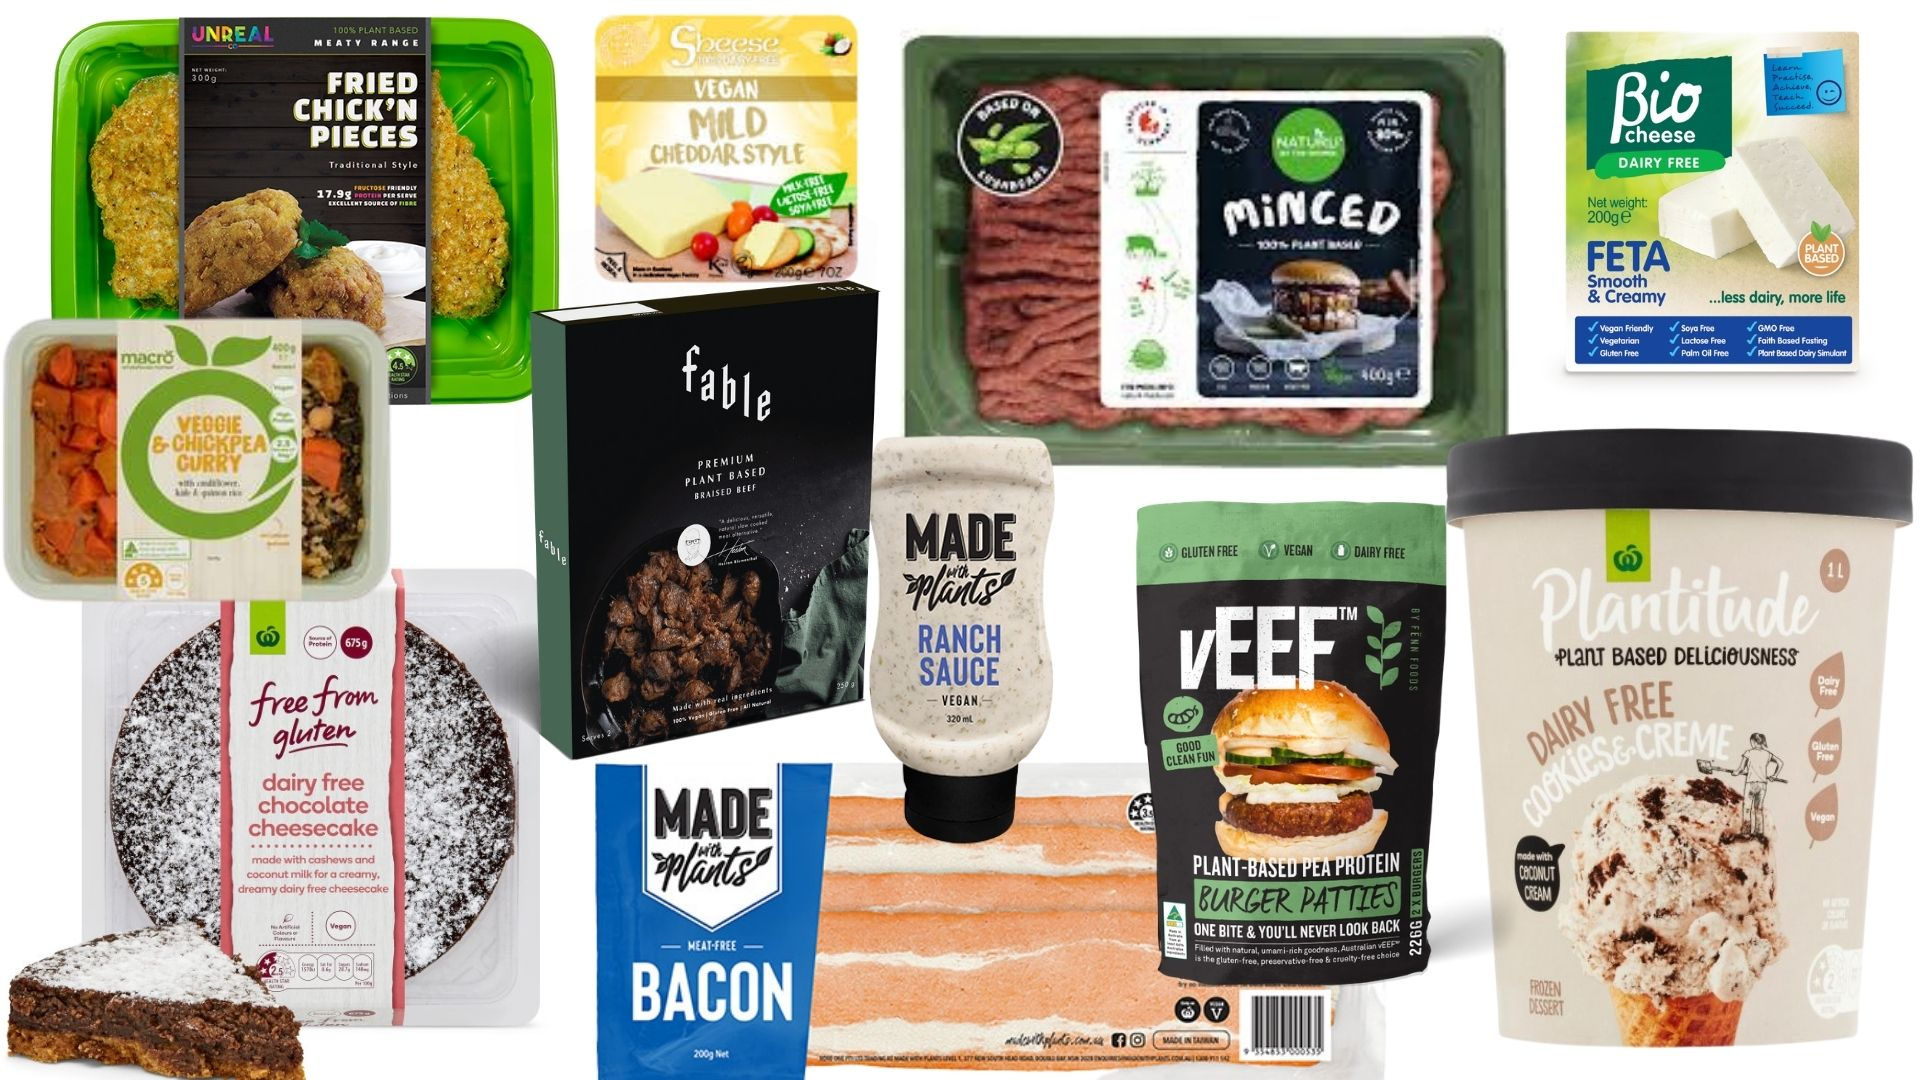 Just some of the vegan products available at Woolworths.